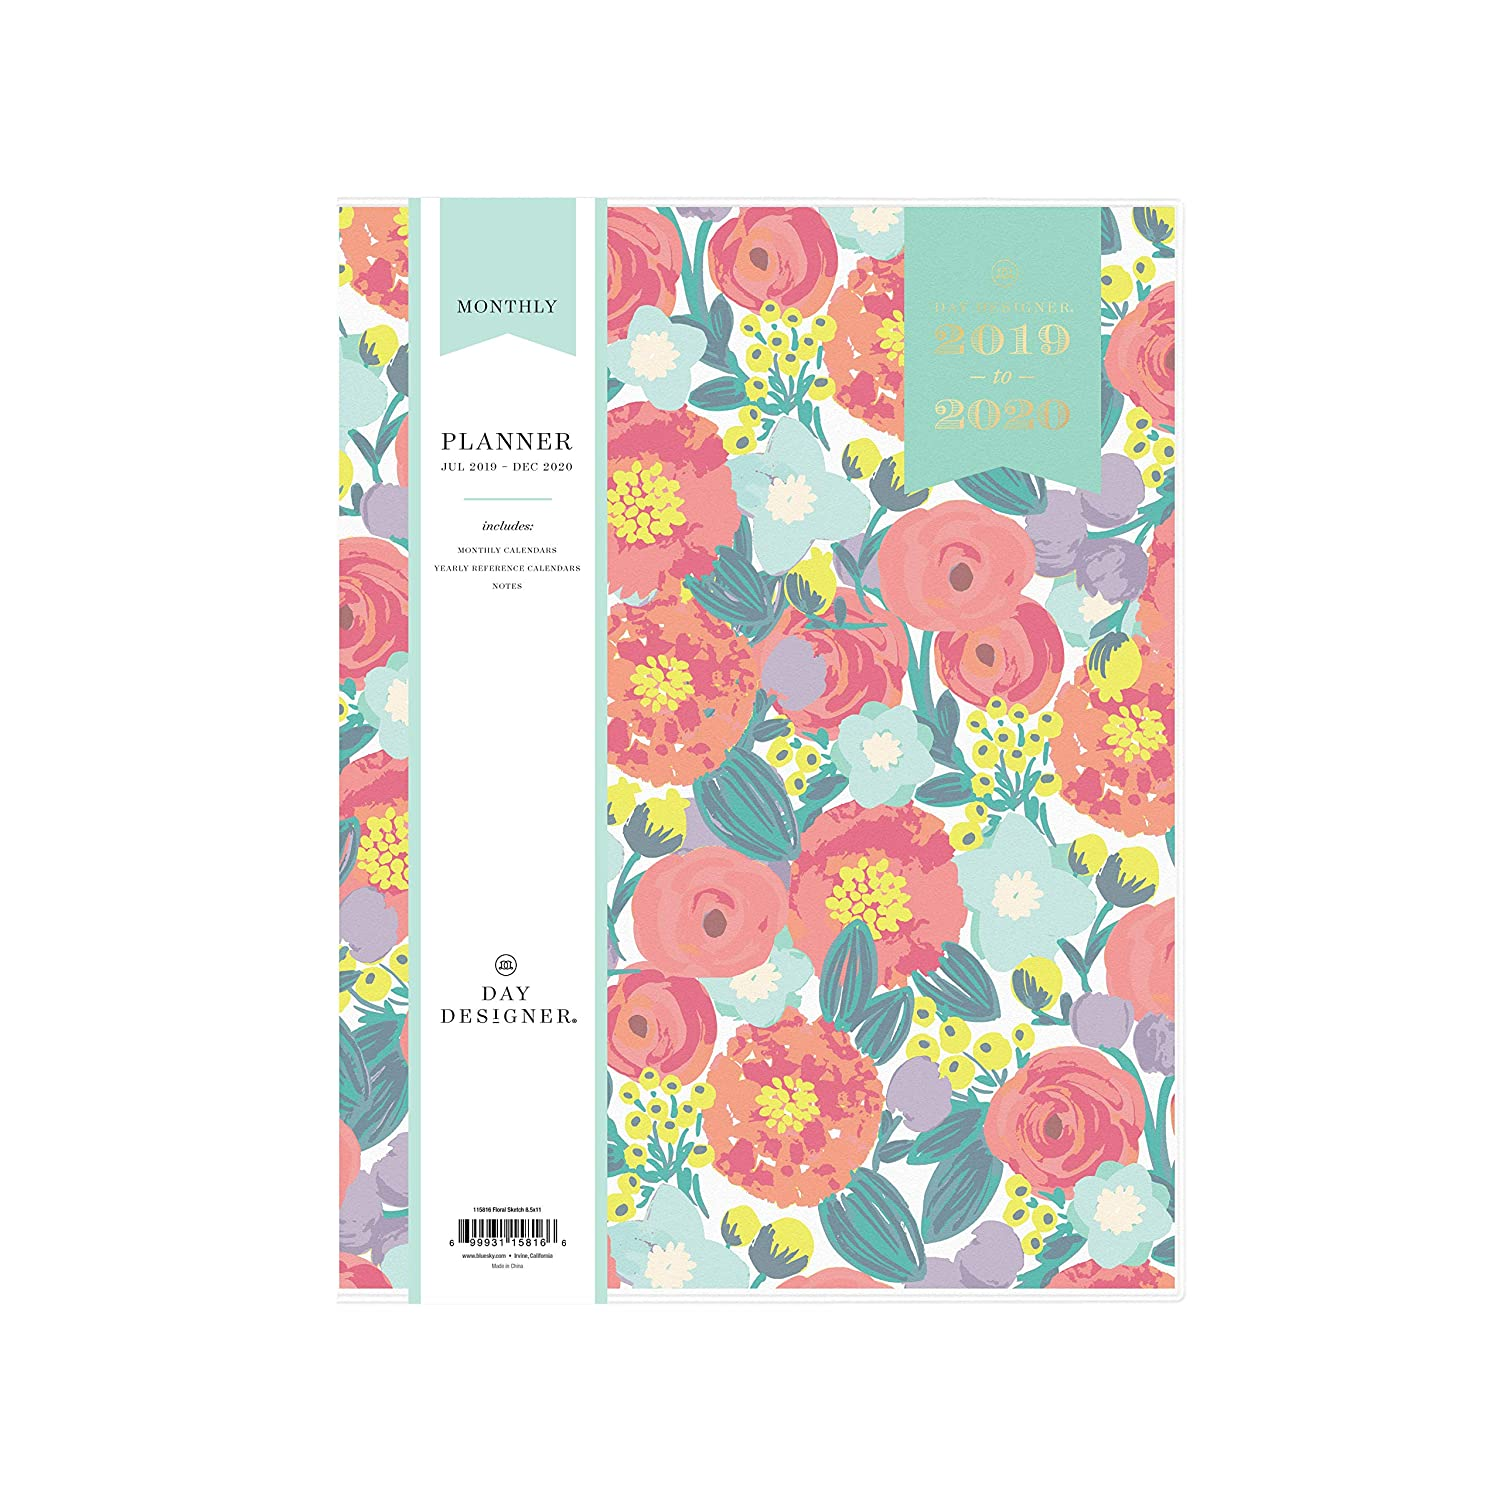 "Day Designer For Blue Sky 2019 2020 Academic Year Monthly Planner, Flexible Cover, Stapled Binding, 8.5"" X 11"", Floral Sketch by Blue Sky"